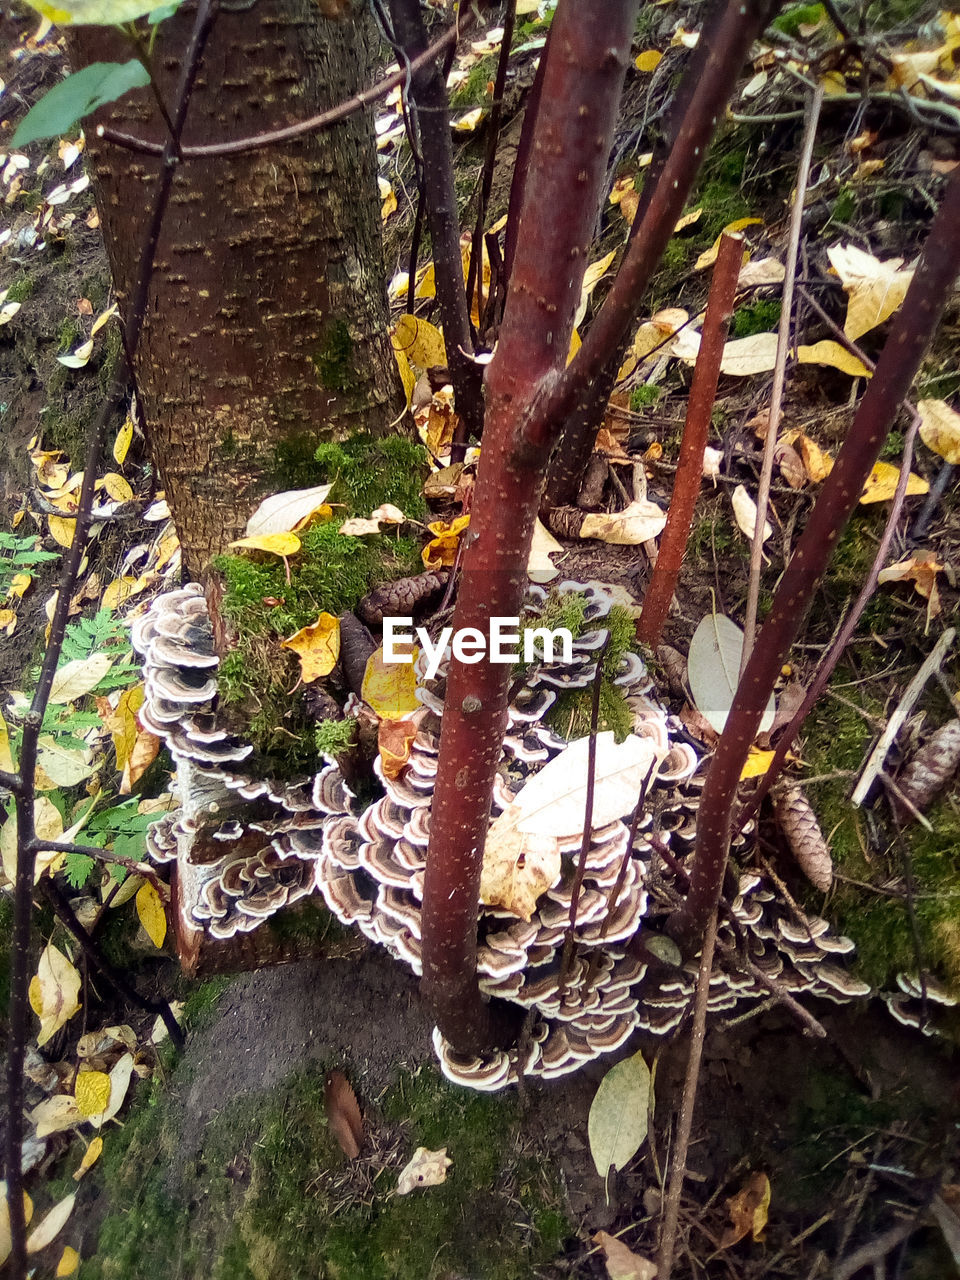 plant, tree, growth, nature, tree trunk, no people, trunk, day, land, forest, plant part, leaf, outdoors, branch, high angle view, tranquility, close-up, beauty in nature, fungus, mushroom, bark, lichen